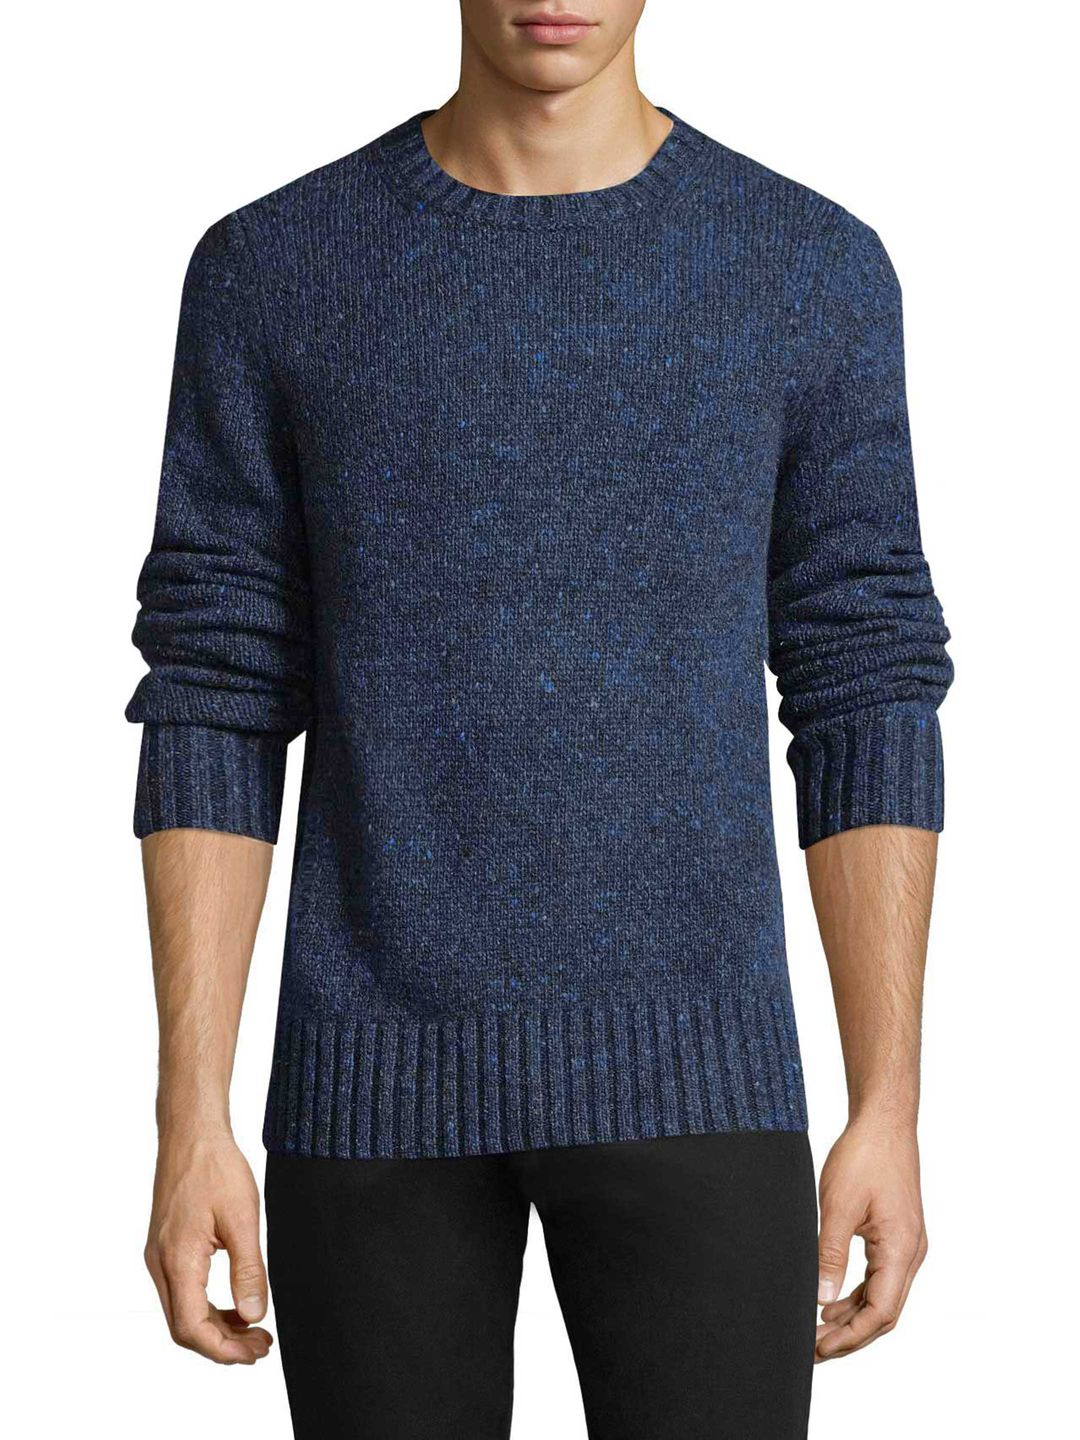 BURBERRY MEN'S CASHMERE AND WOOL BLEND SWEATER - DARK BLUE/NAVY, SIZE XXL.  #burberry #cloth #